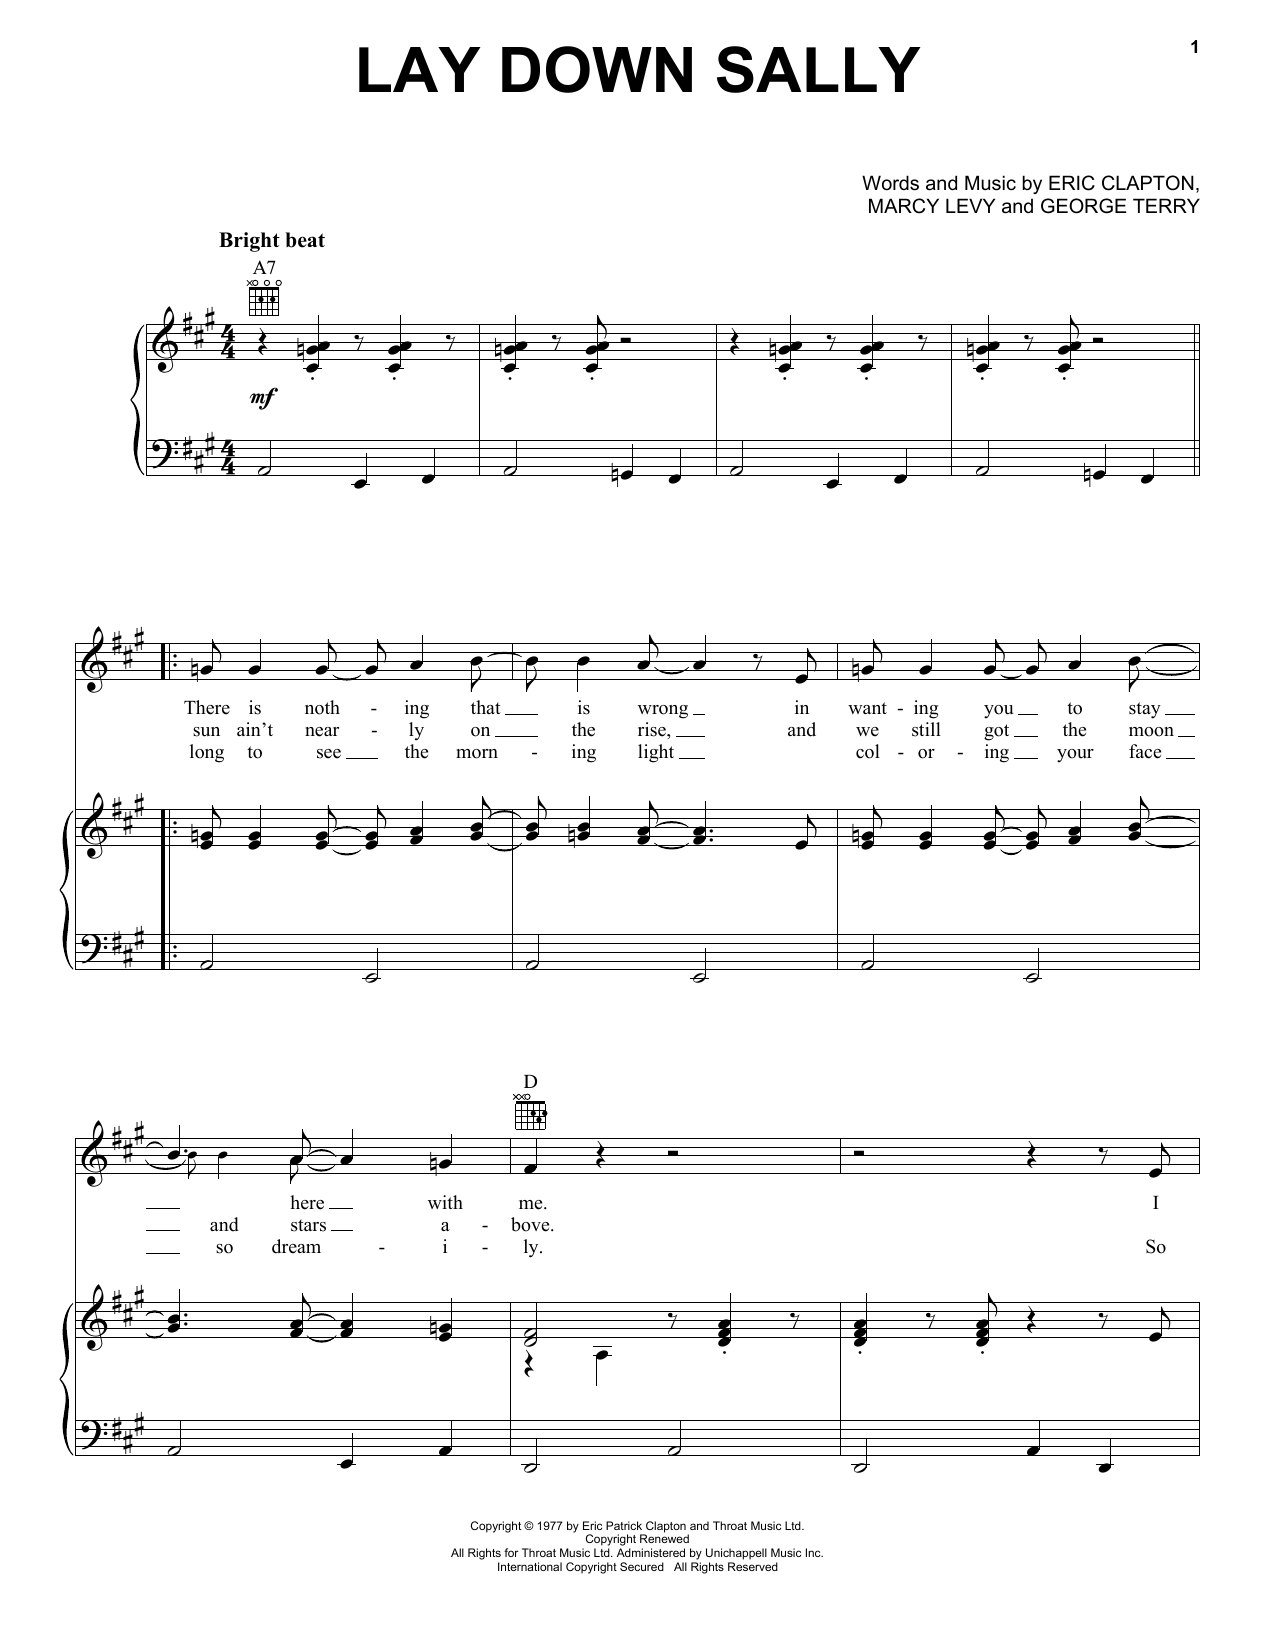 Lay Down Sally sheet music for voice, piano or guitar by Marcy Levy